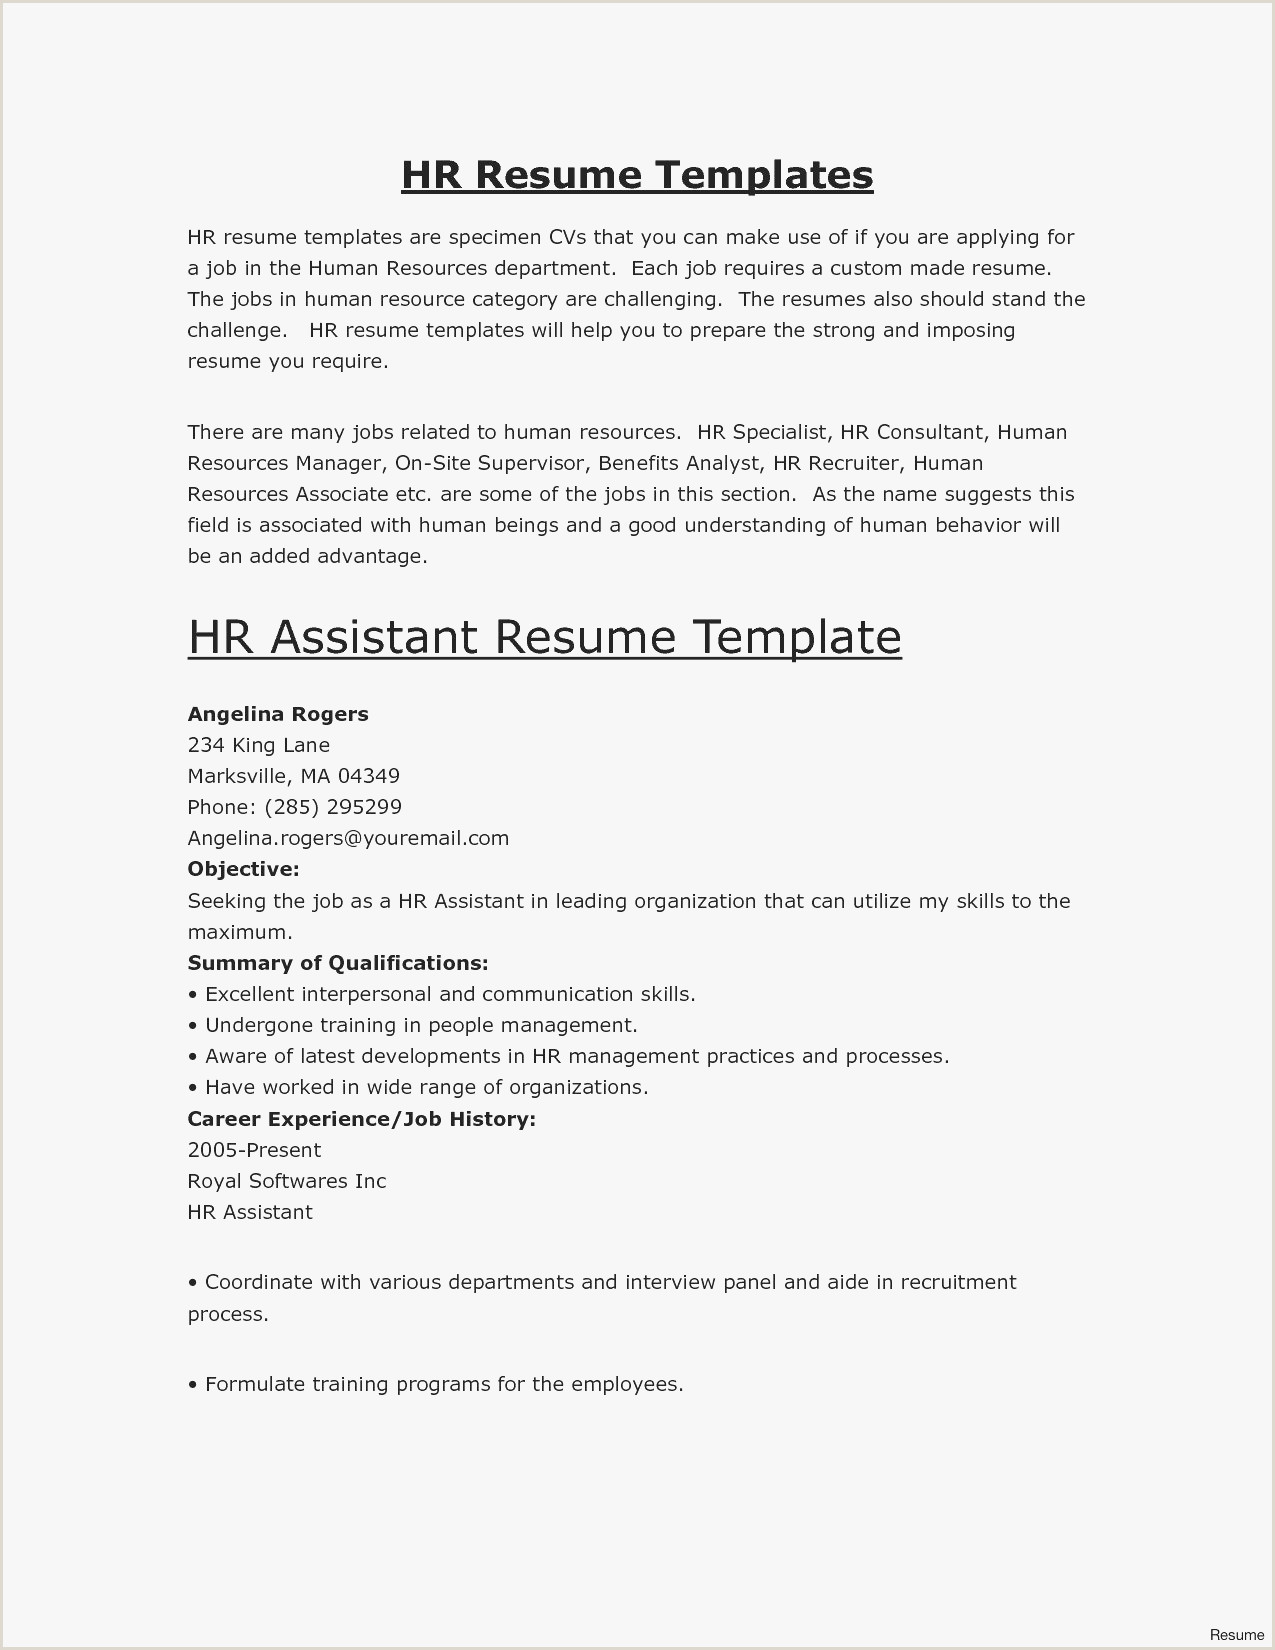 Opening Statement for Resume Cover Letter Unique Cover